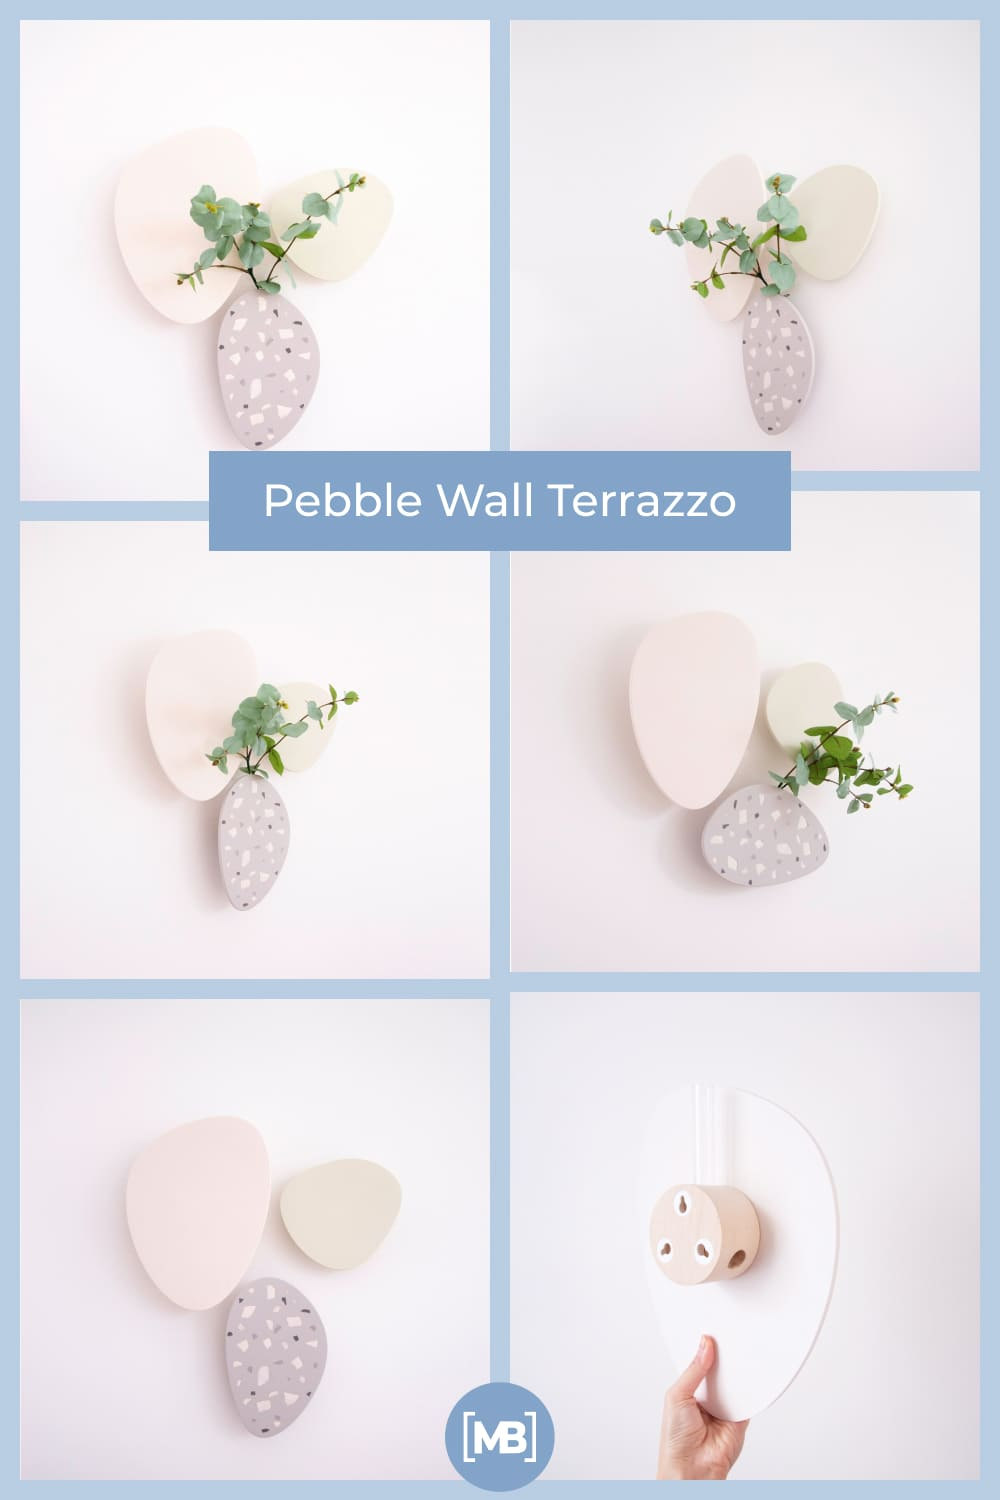 The Teumsae series of vases resembles humble plants growing through the gaps between sidewalks and stone fences.